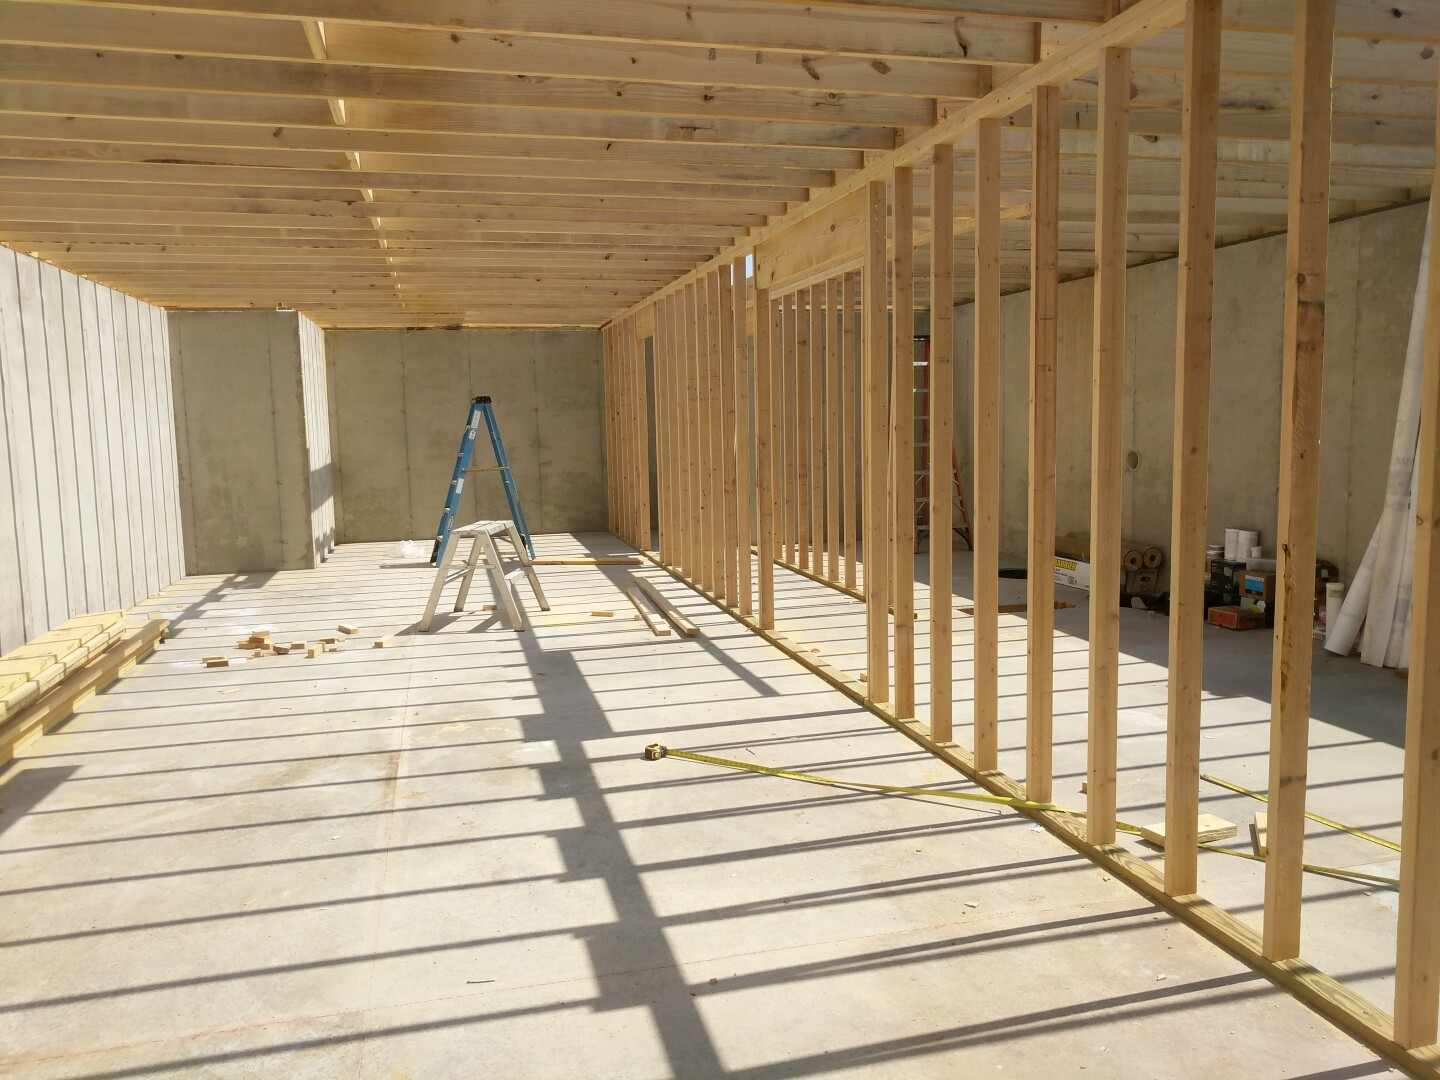 Framed basement walls in a new house.